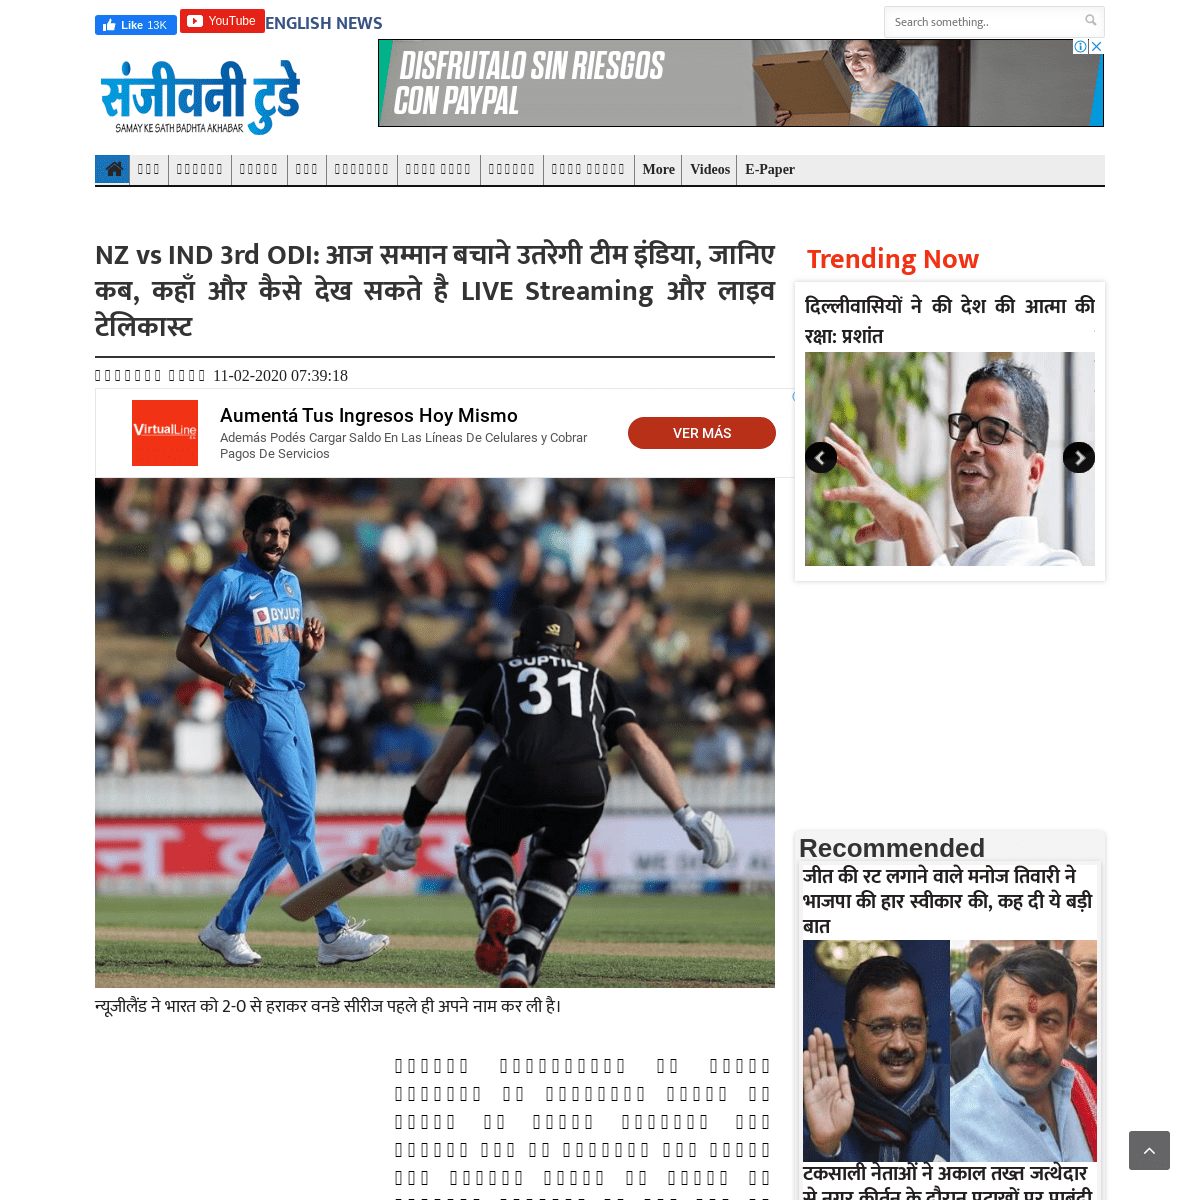 ArchiveBay.com - www.sanjeevnitoday.com/sports/nz-vs-ind-3rd-odi-team-india-will-play-to-save-honor-today-know-when-where-and-how-you-can-watch-live-streaming-and-live-telecast/20200211/321819 - NZ vs IND 3rd ODI- आज सम्मान बचाने उतरेगी टीम इंडिया, जानिए �